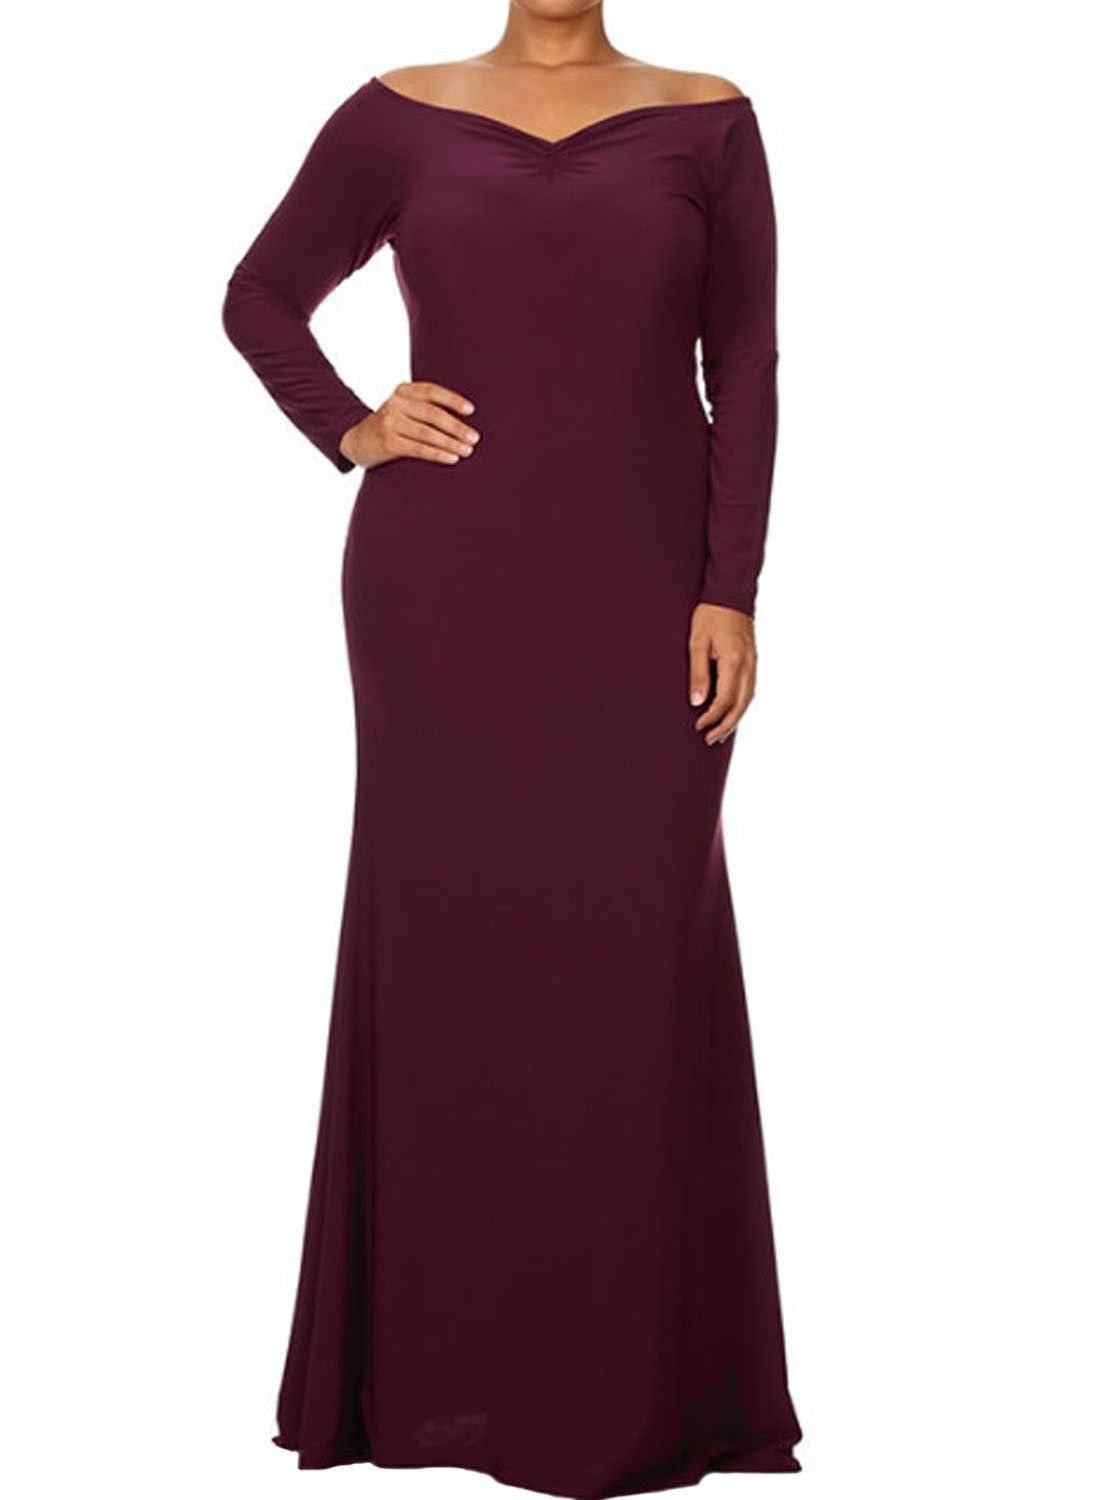 9c4d9e93b22 This stunning maxi is cut from the comfy and breathable cloth. Our solid off  shoulder plus dress is versatile